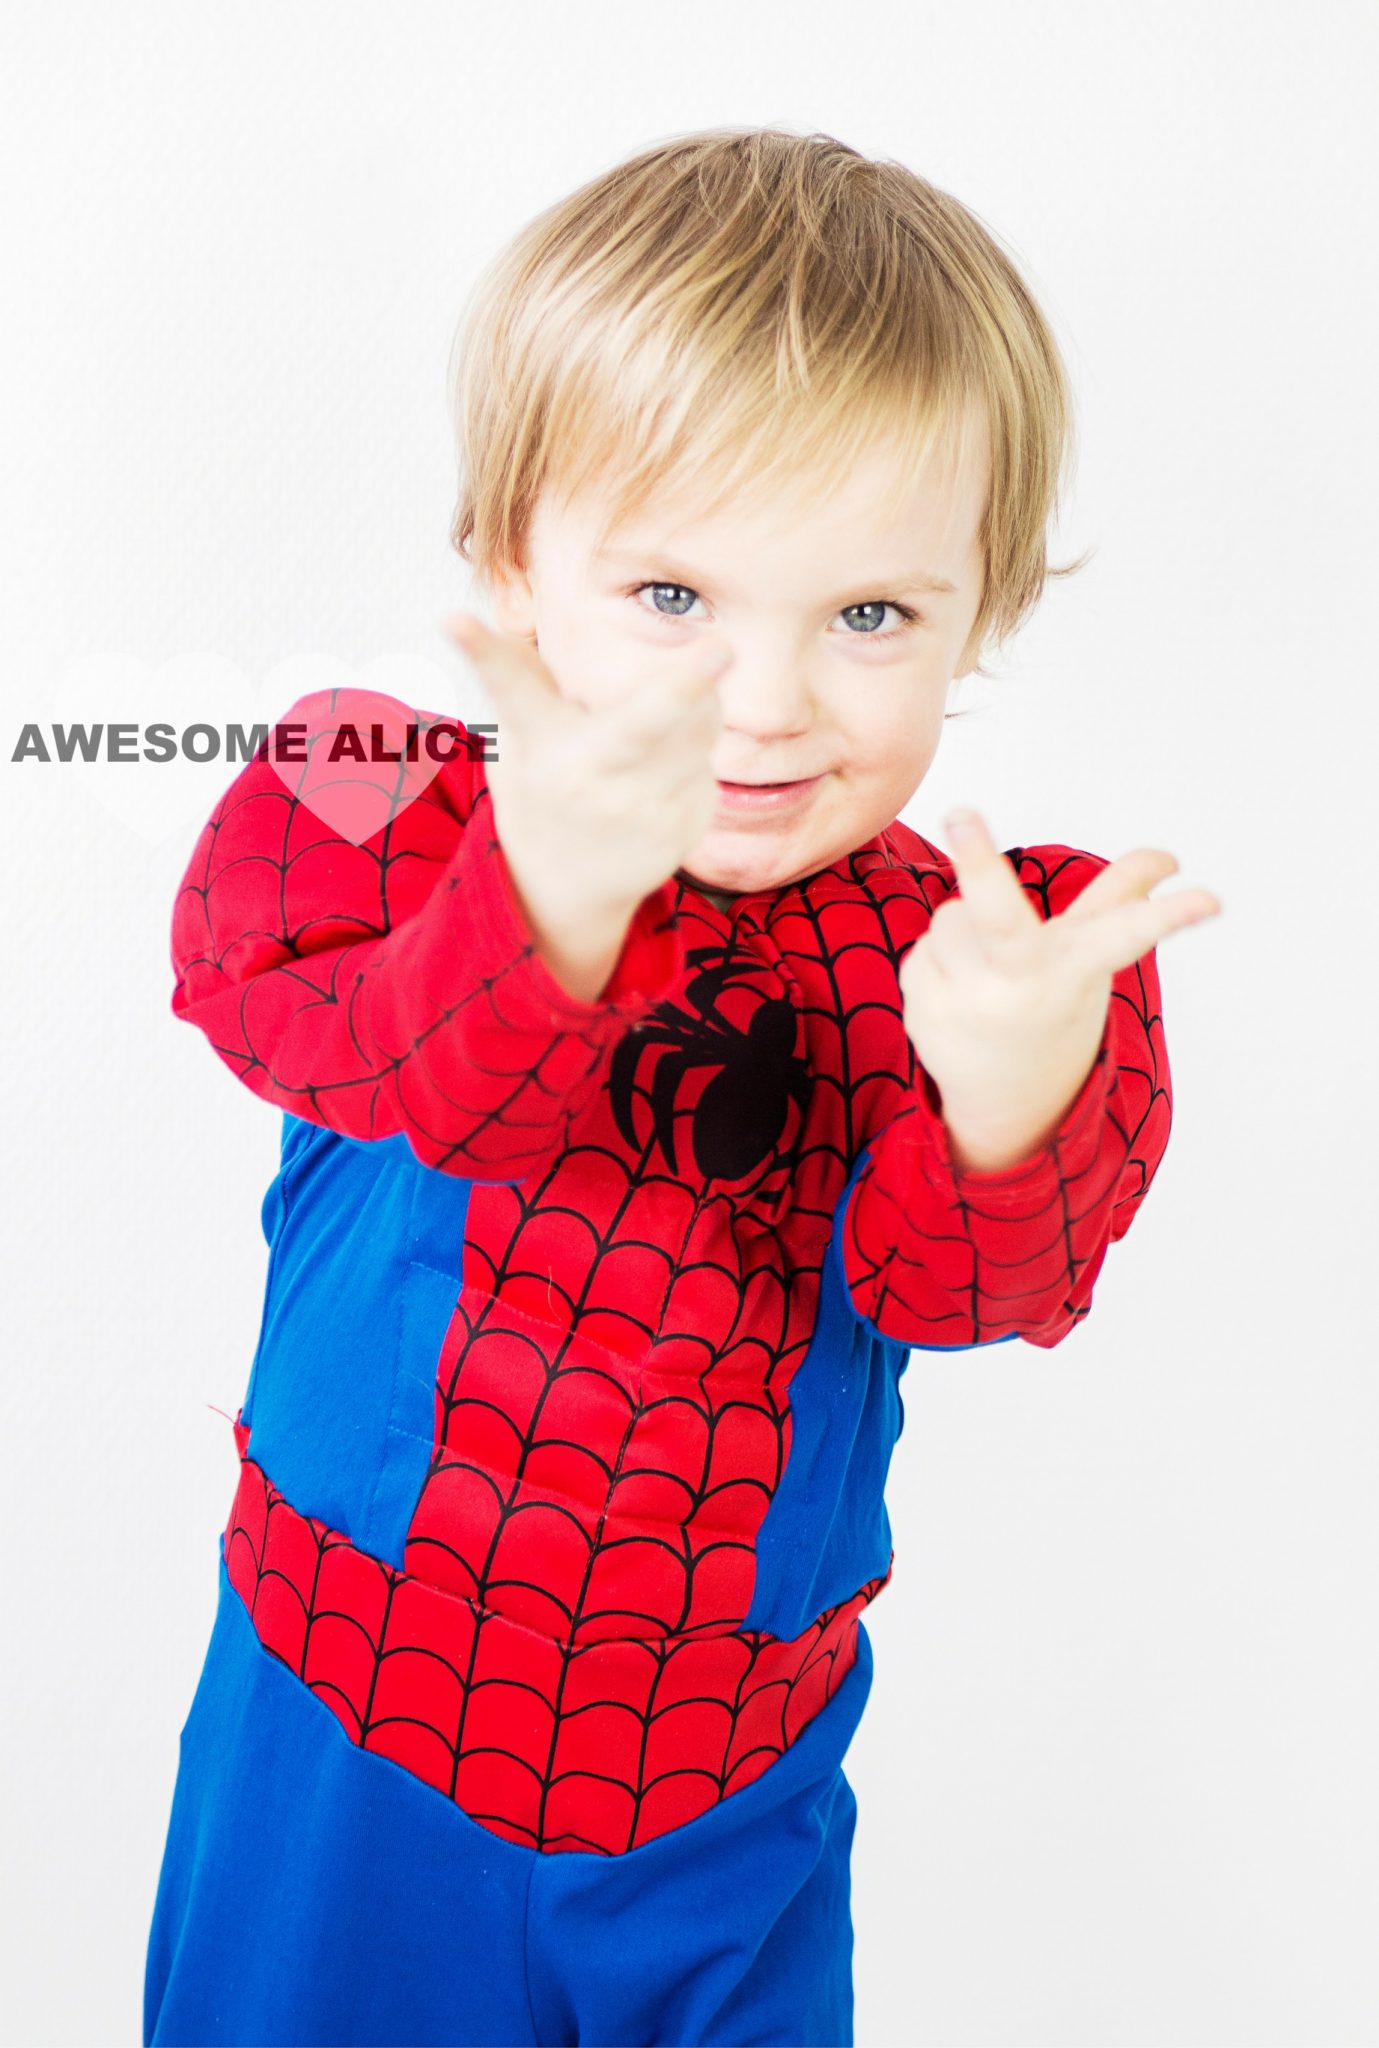 Amazing spiderman Anton